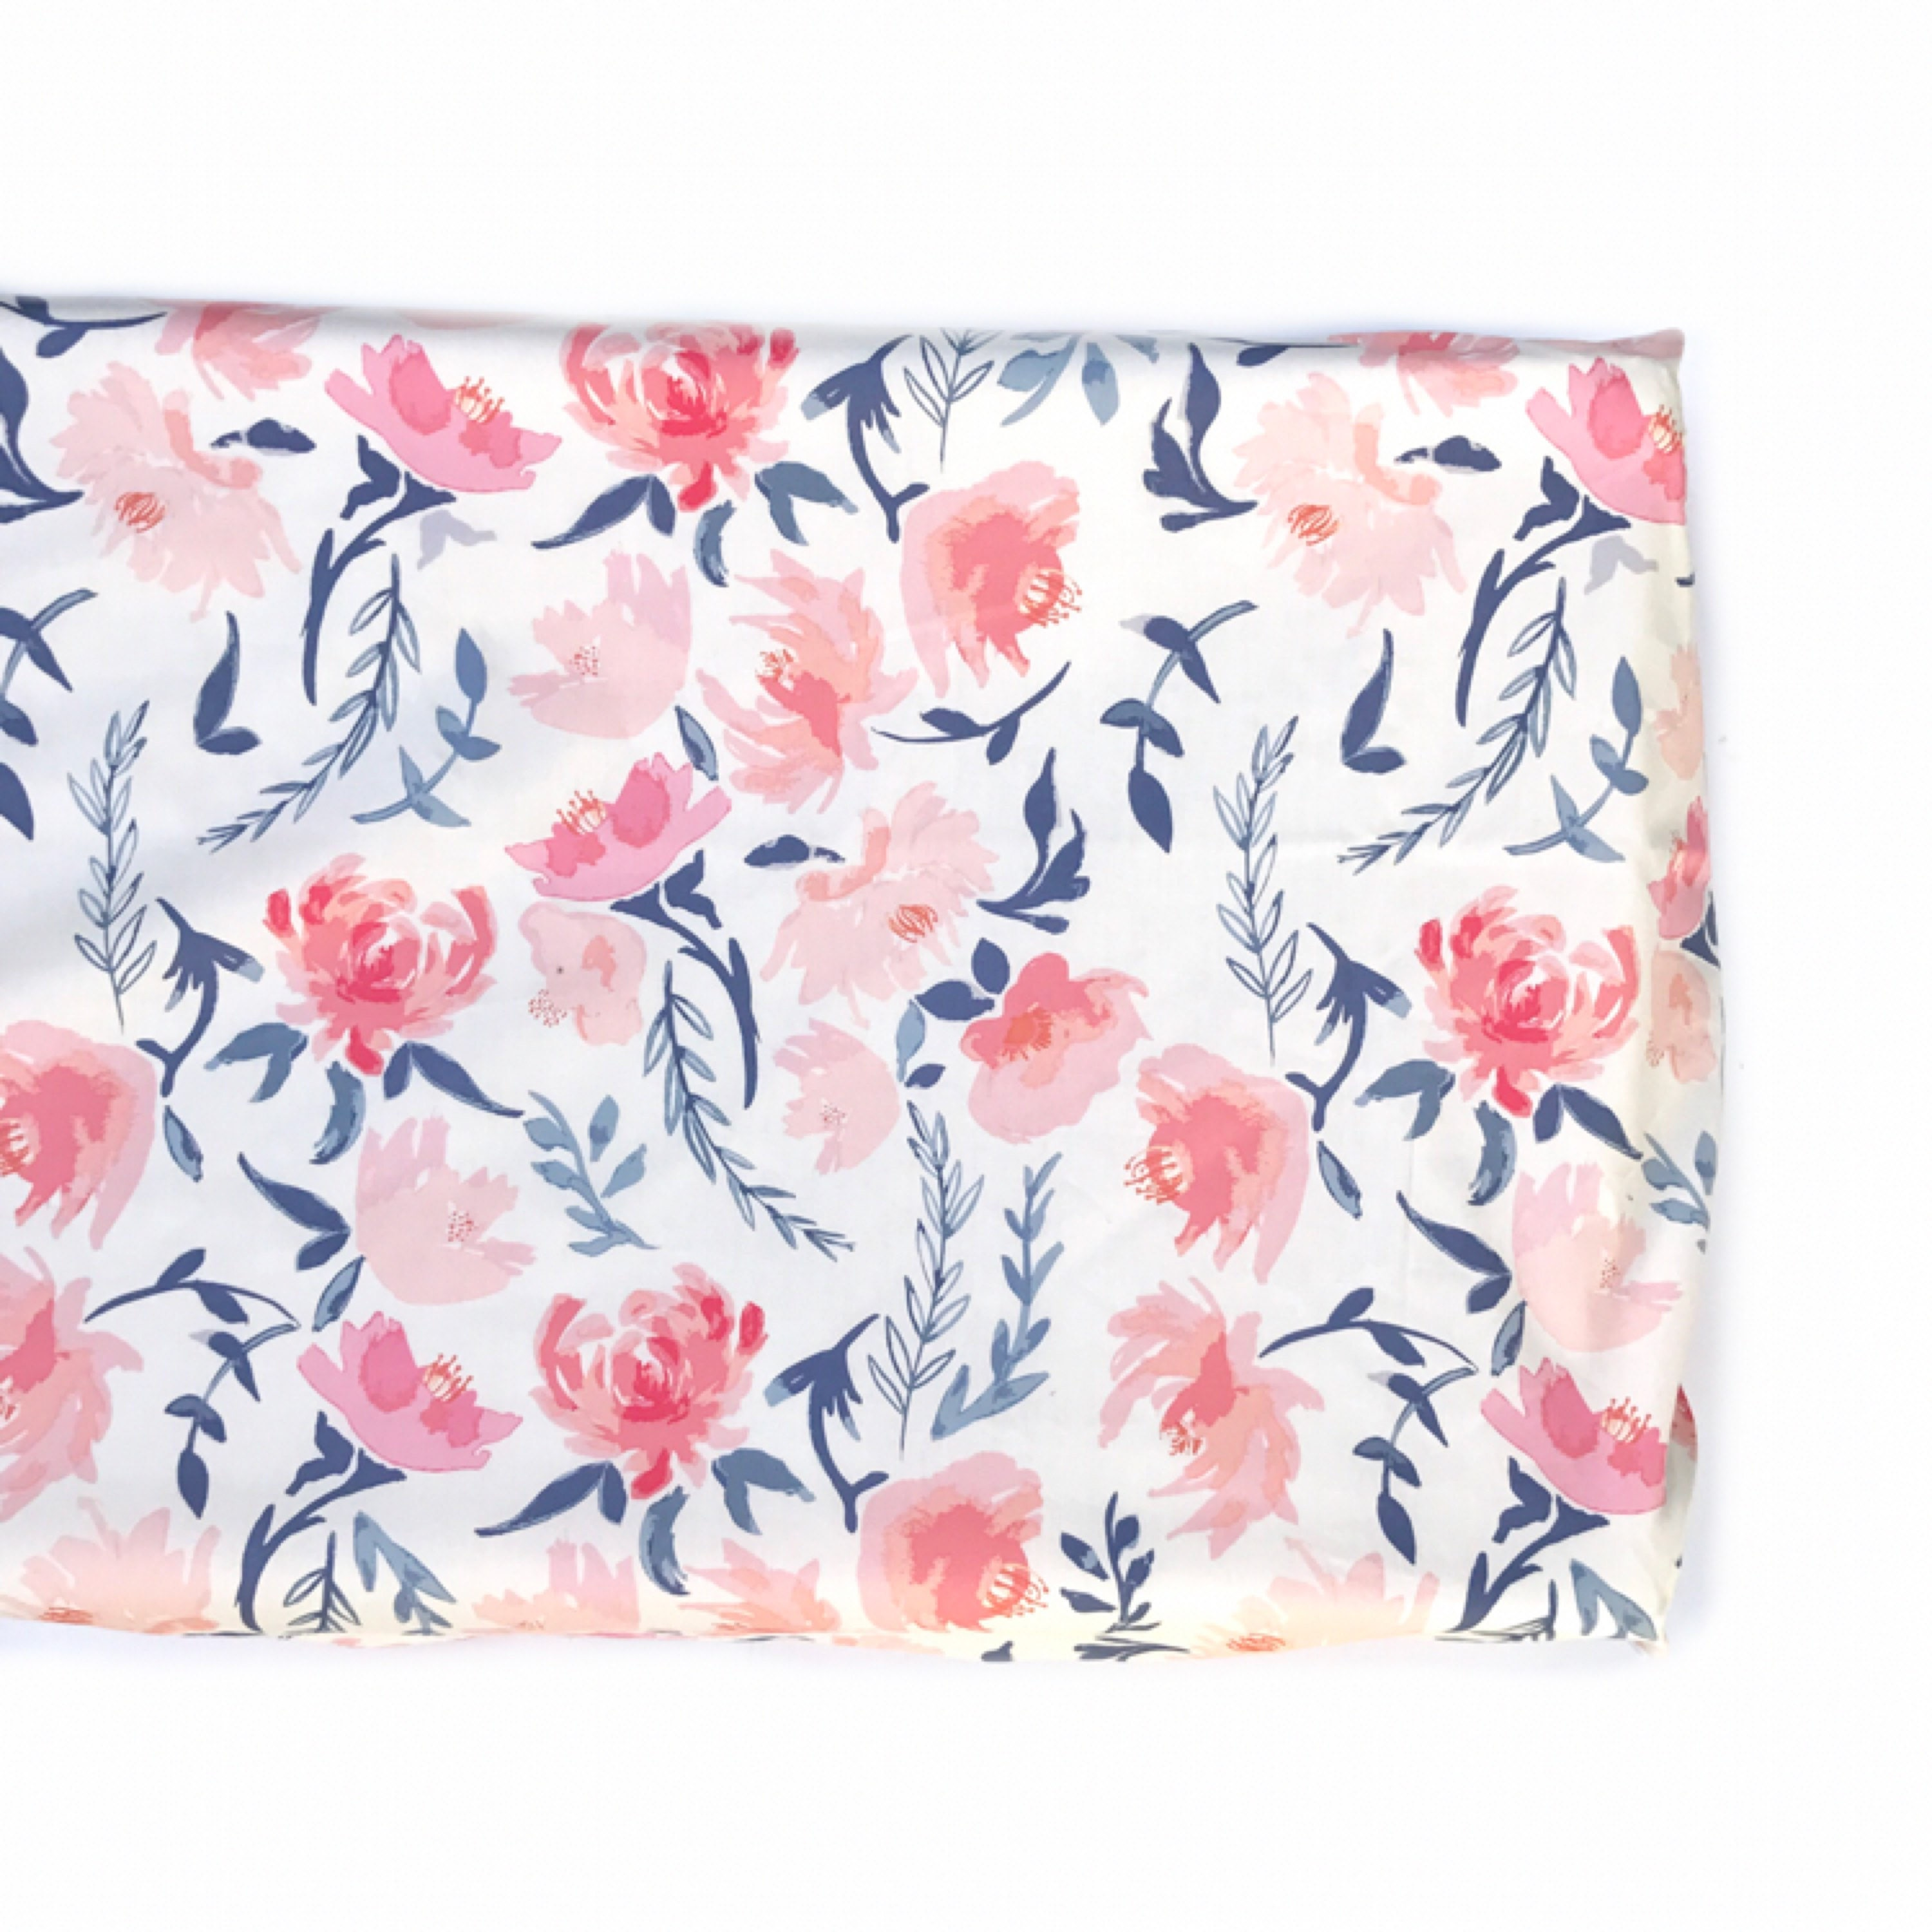 Crib Sheet Or Changing Pad Cover Romantic Floral Floral Crib